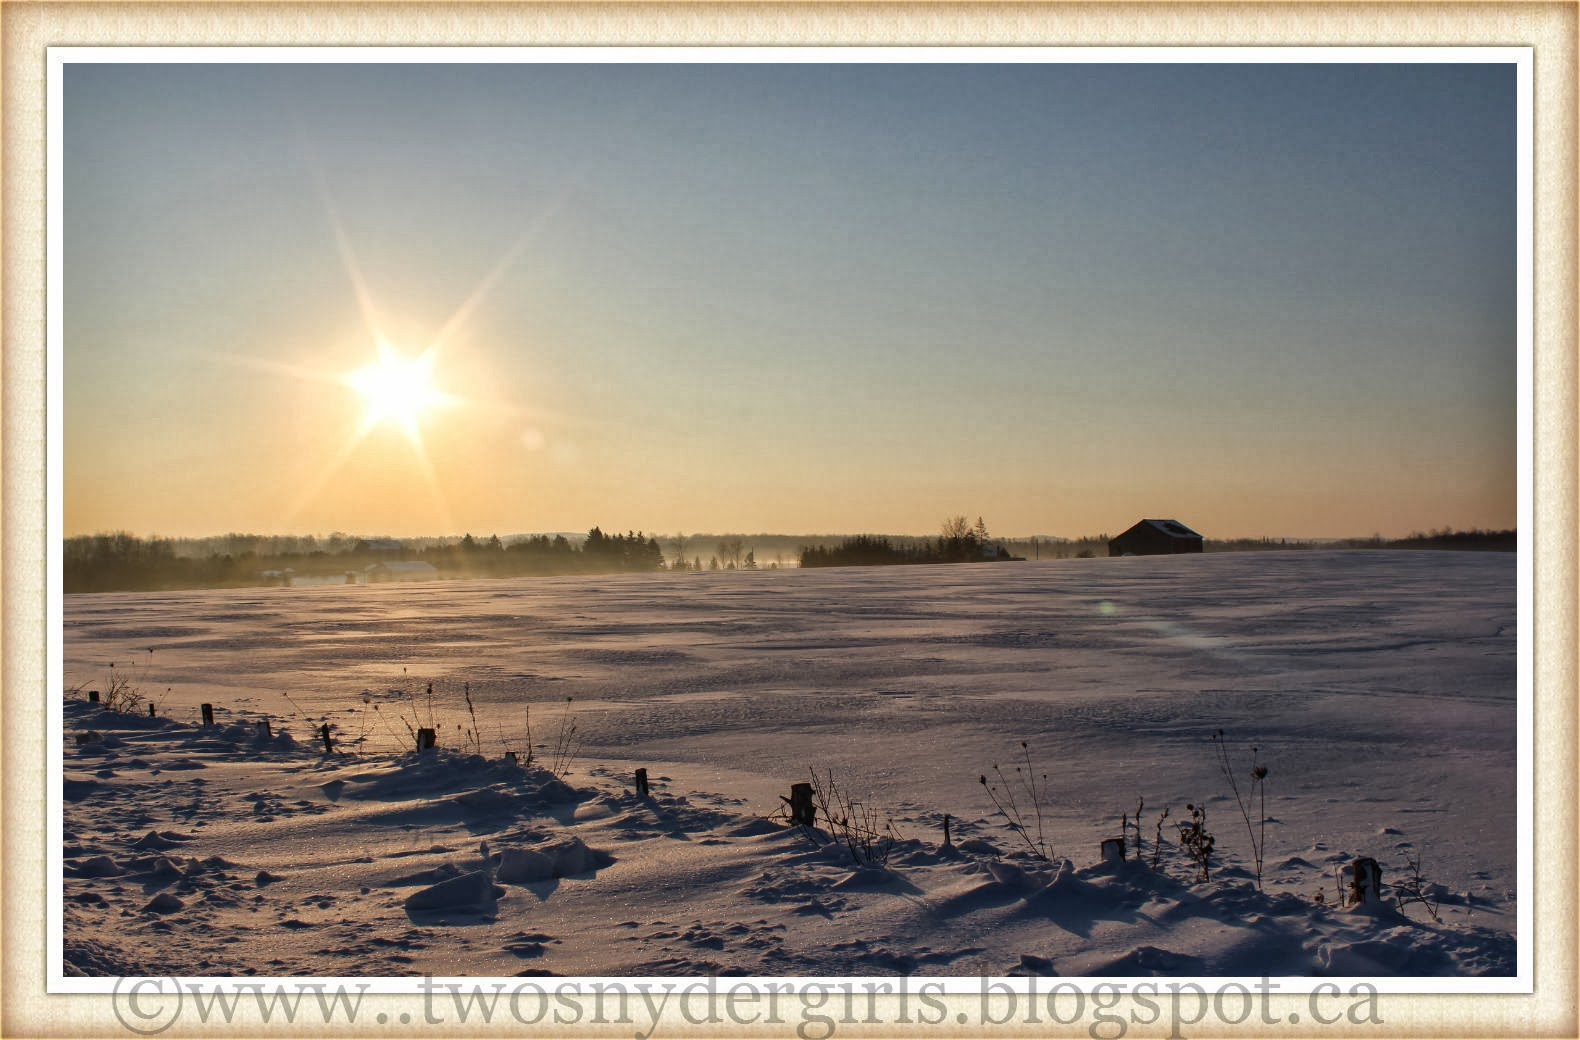 Sunrise over a winter field